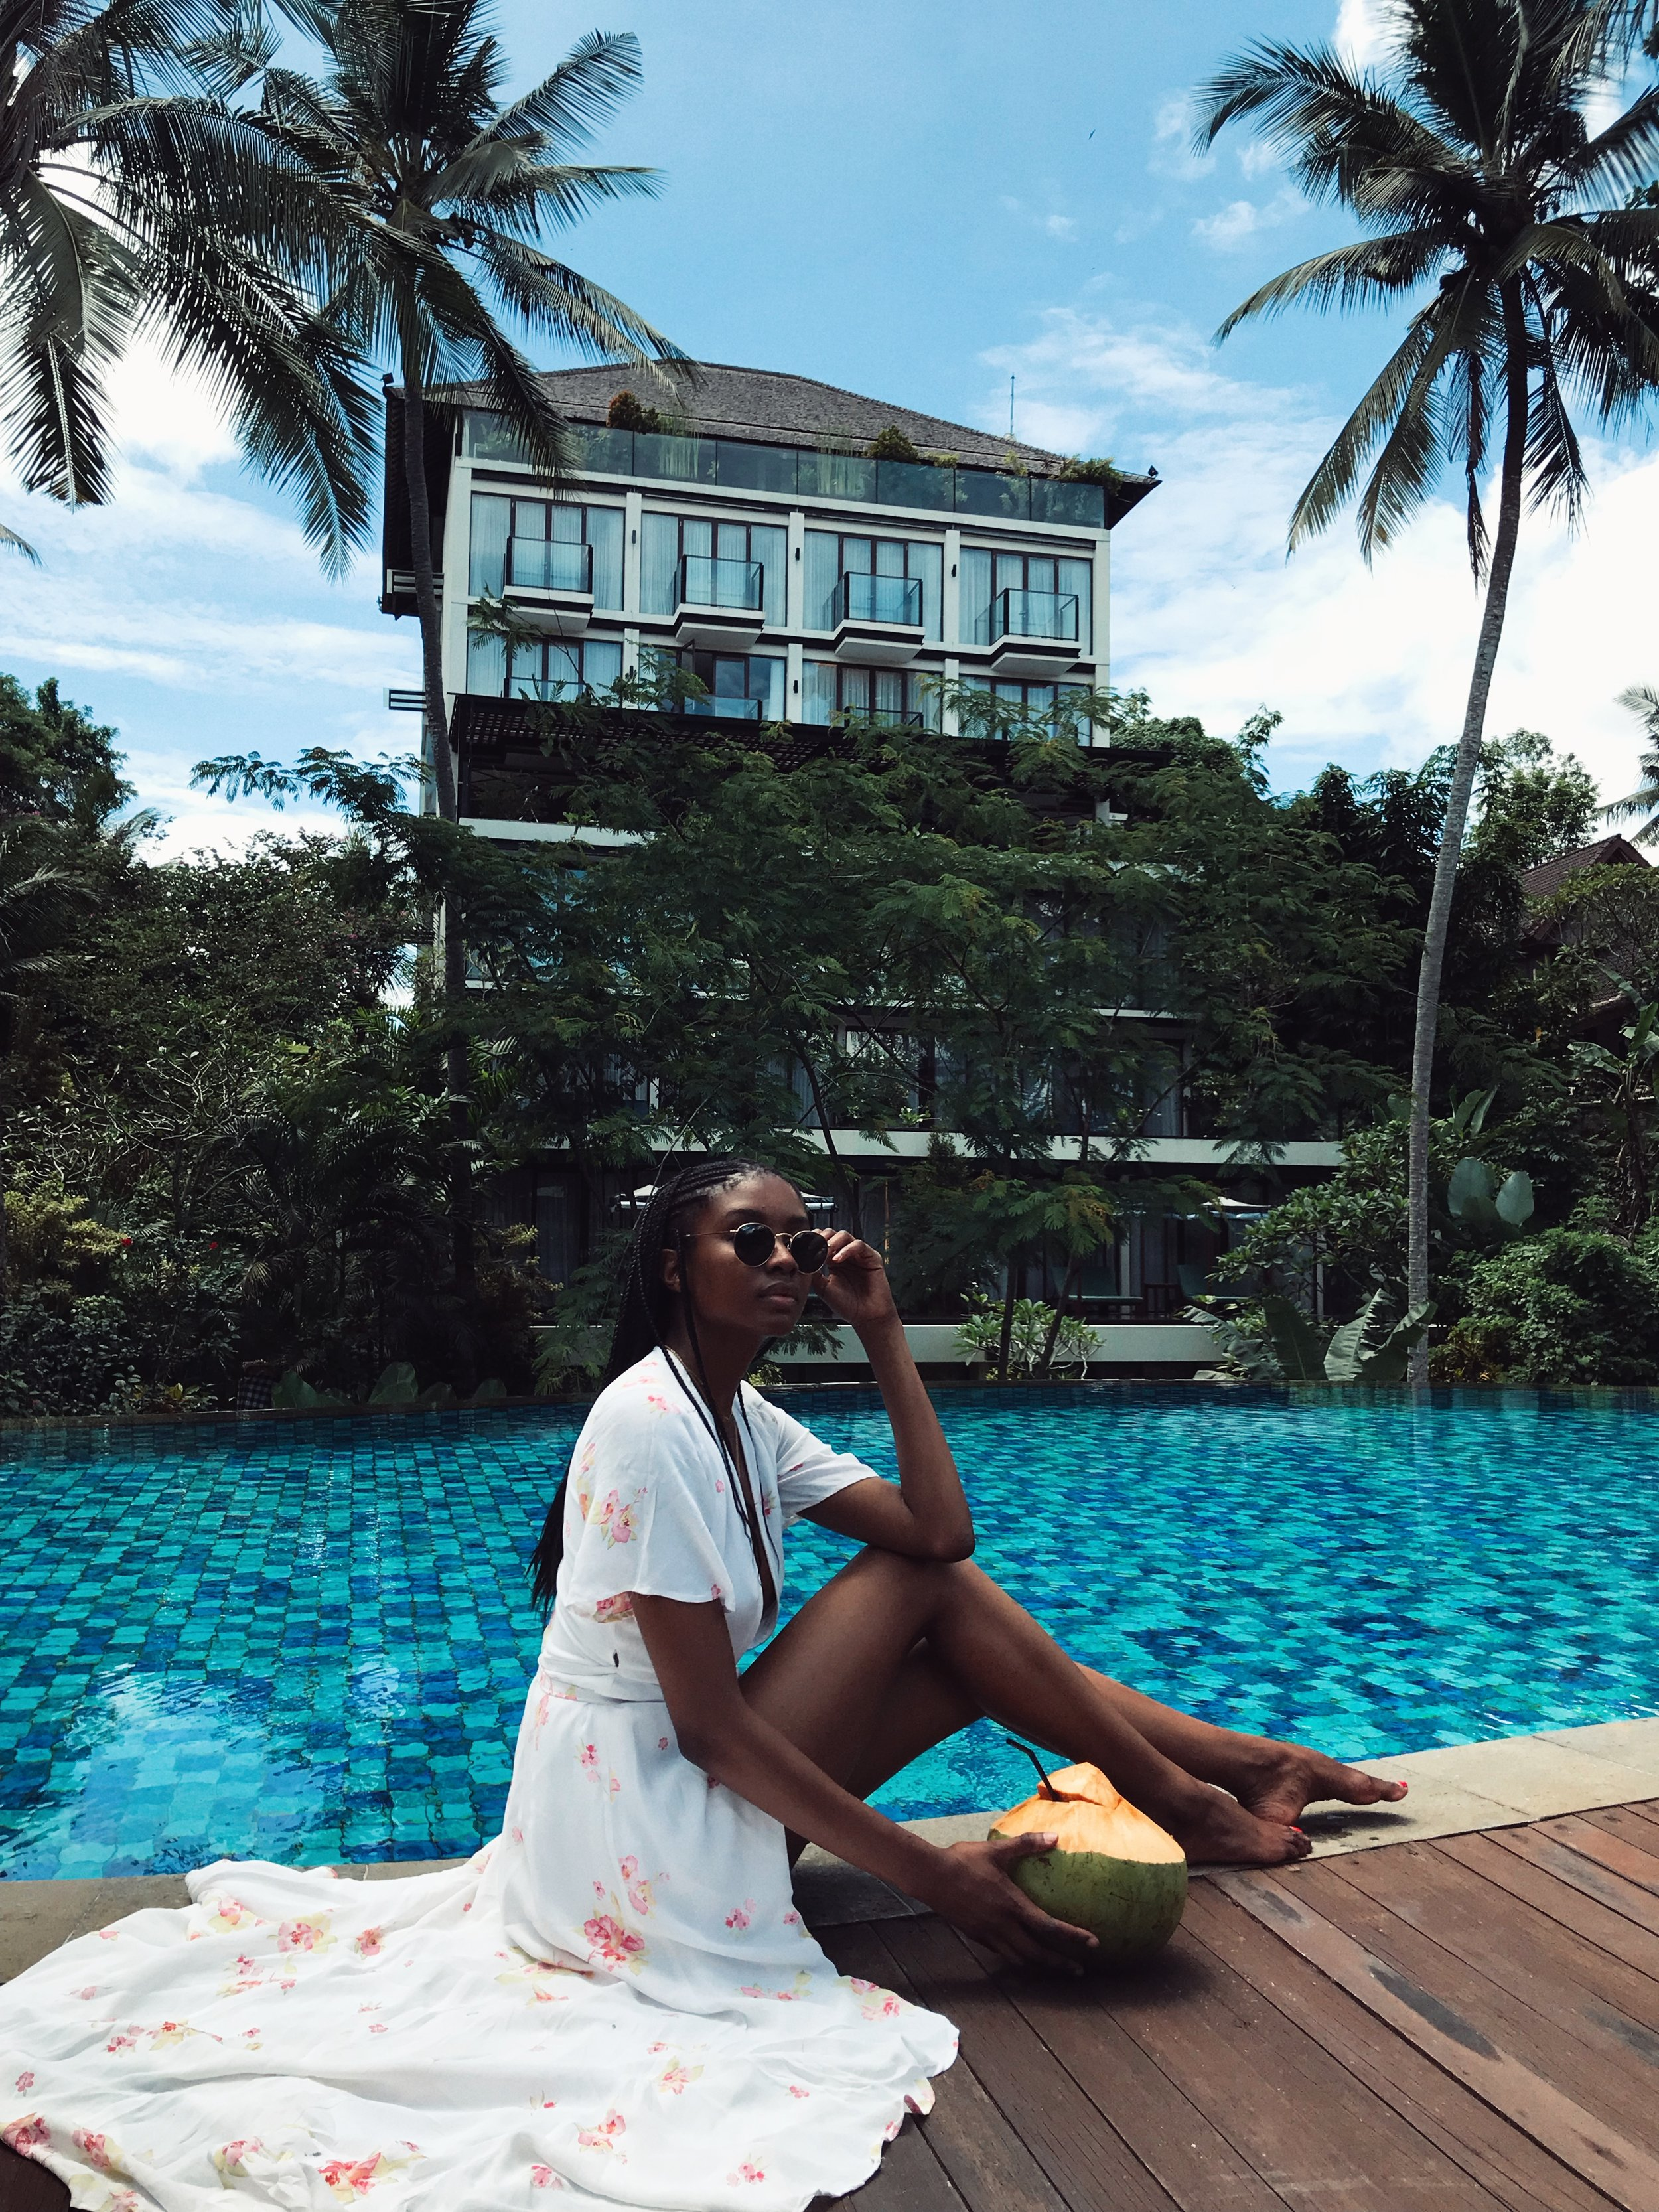 Consciously Connected Travel  -  Culturally Connected Experiences  - Wellness - New Year Preparation, head into the new year with a new glow - CC Edit - Natasha Ndlovu  - Bali, Indonesia